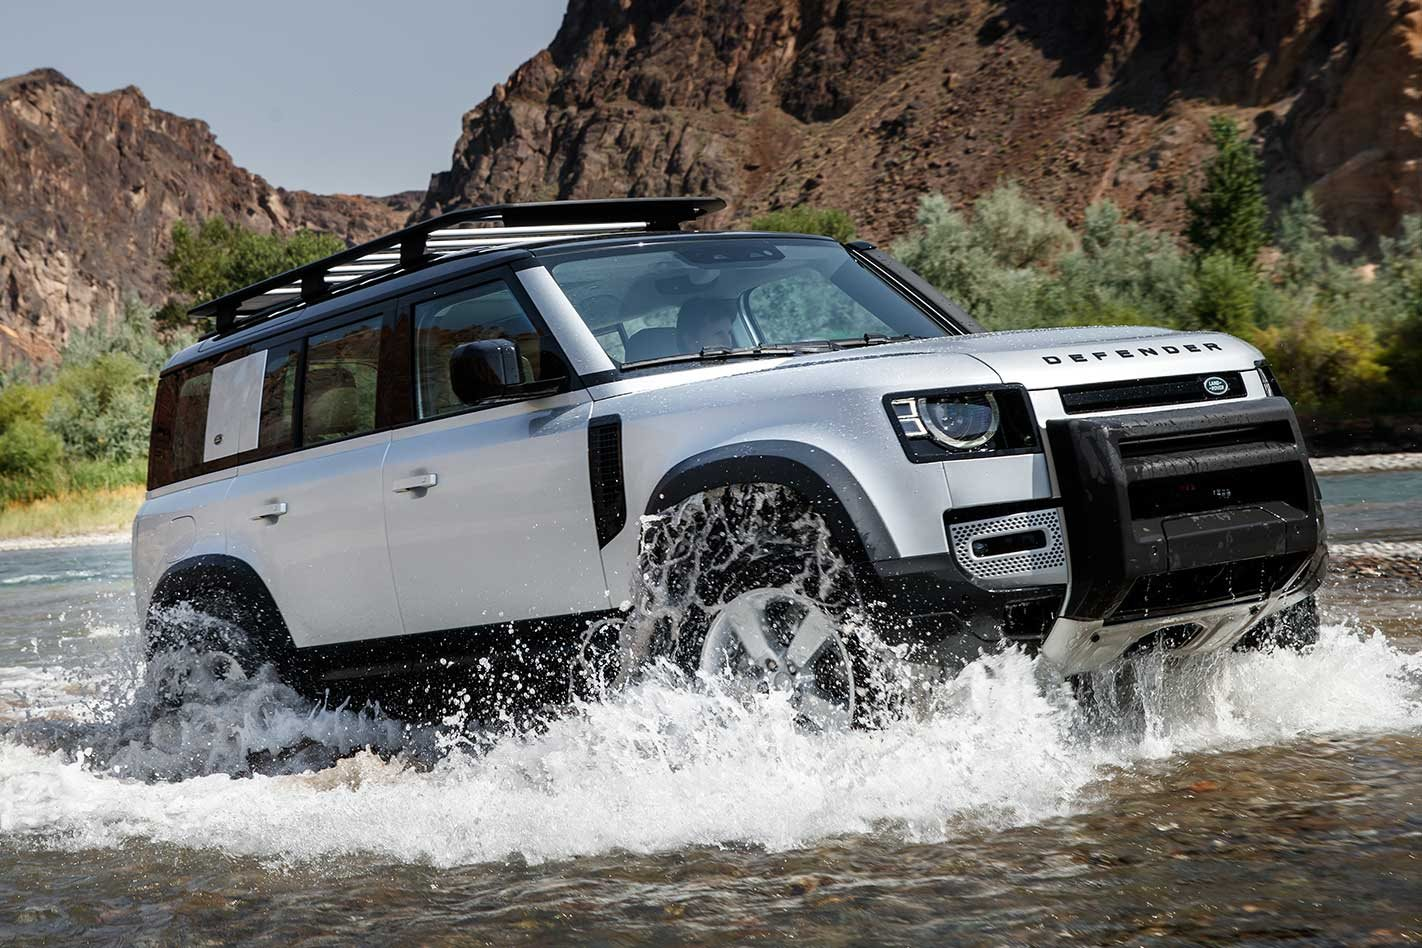 A closer look at the 2020 Land Rover Defender